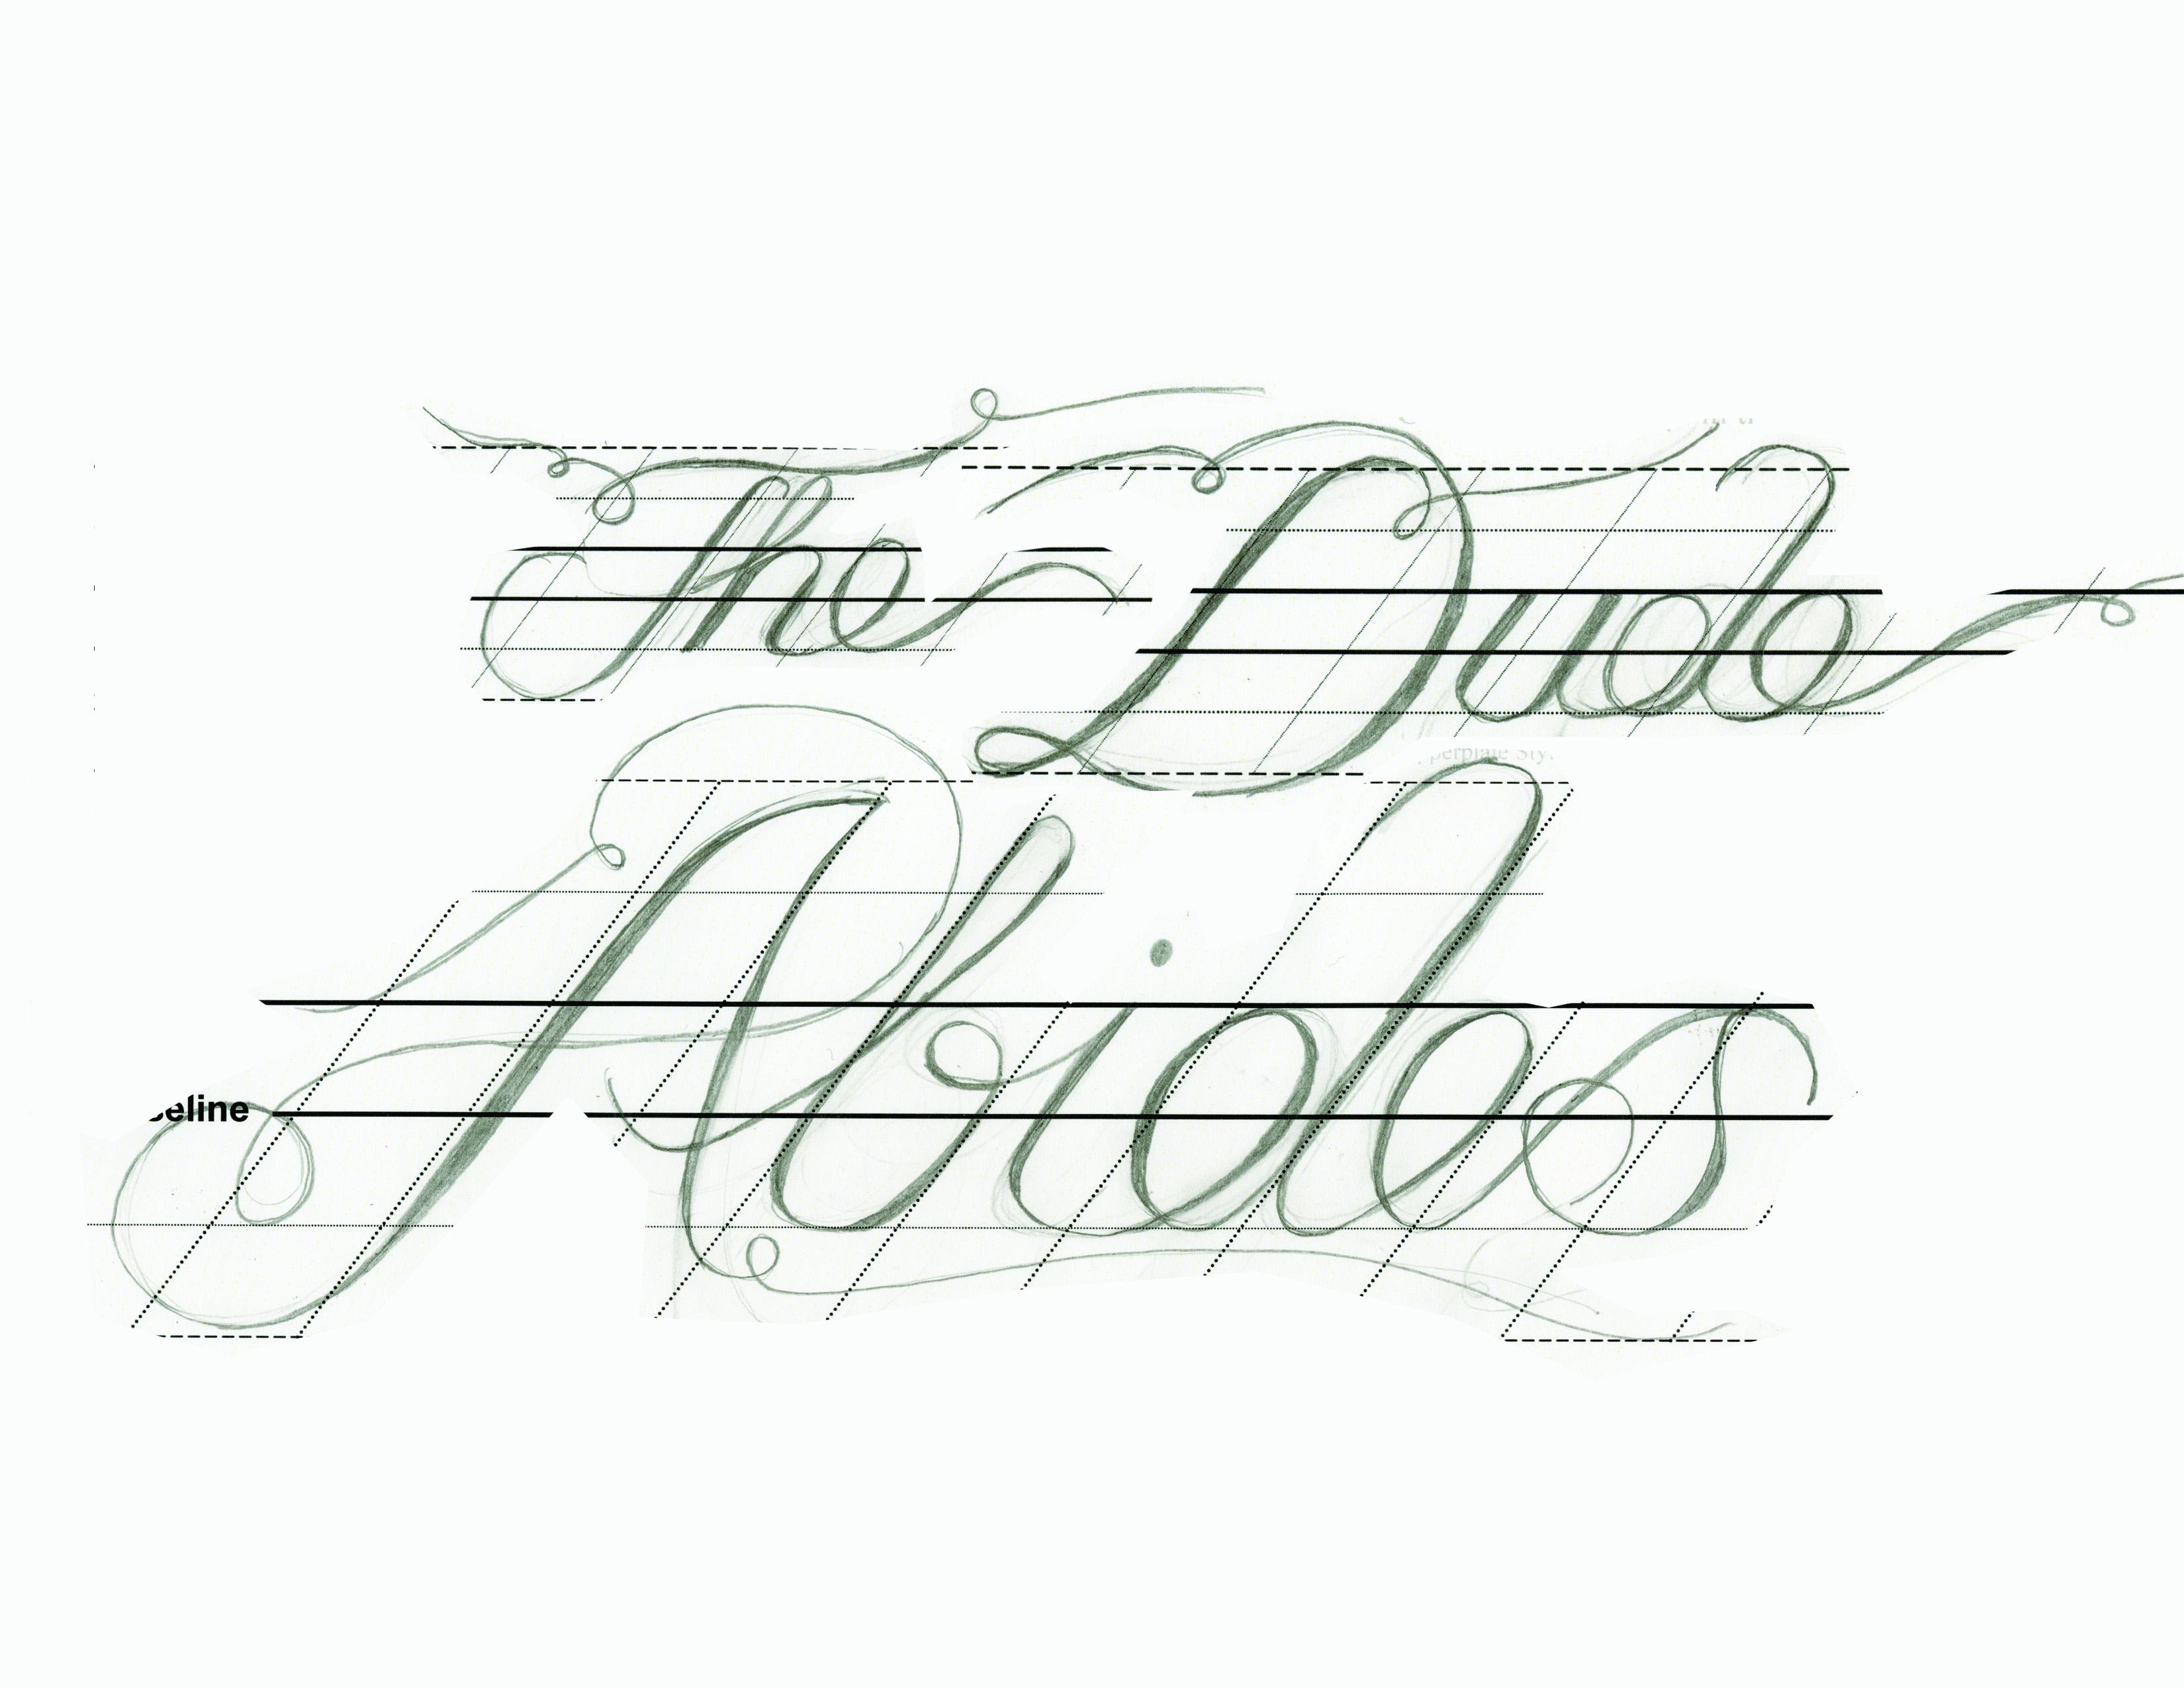 The Dude Abides - image 1 - student project